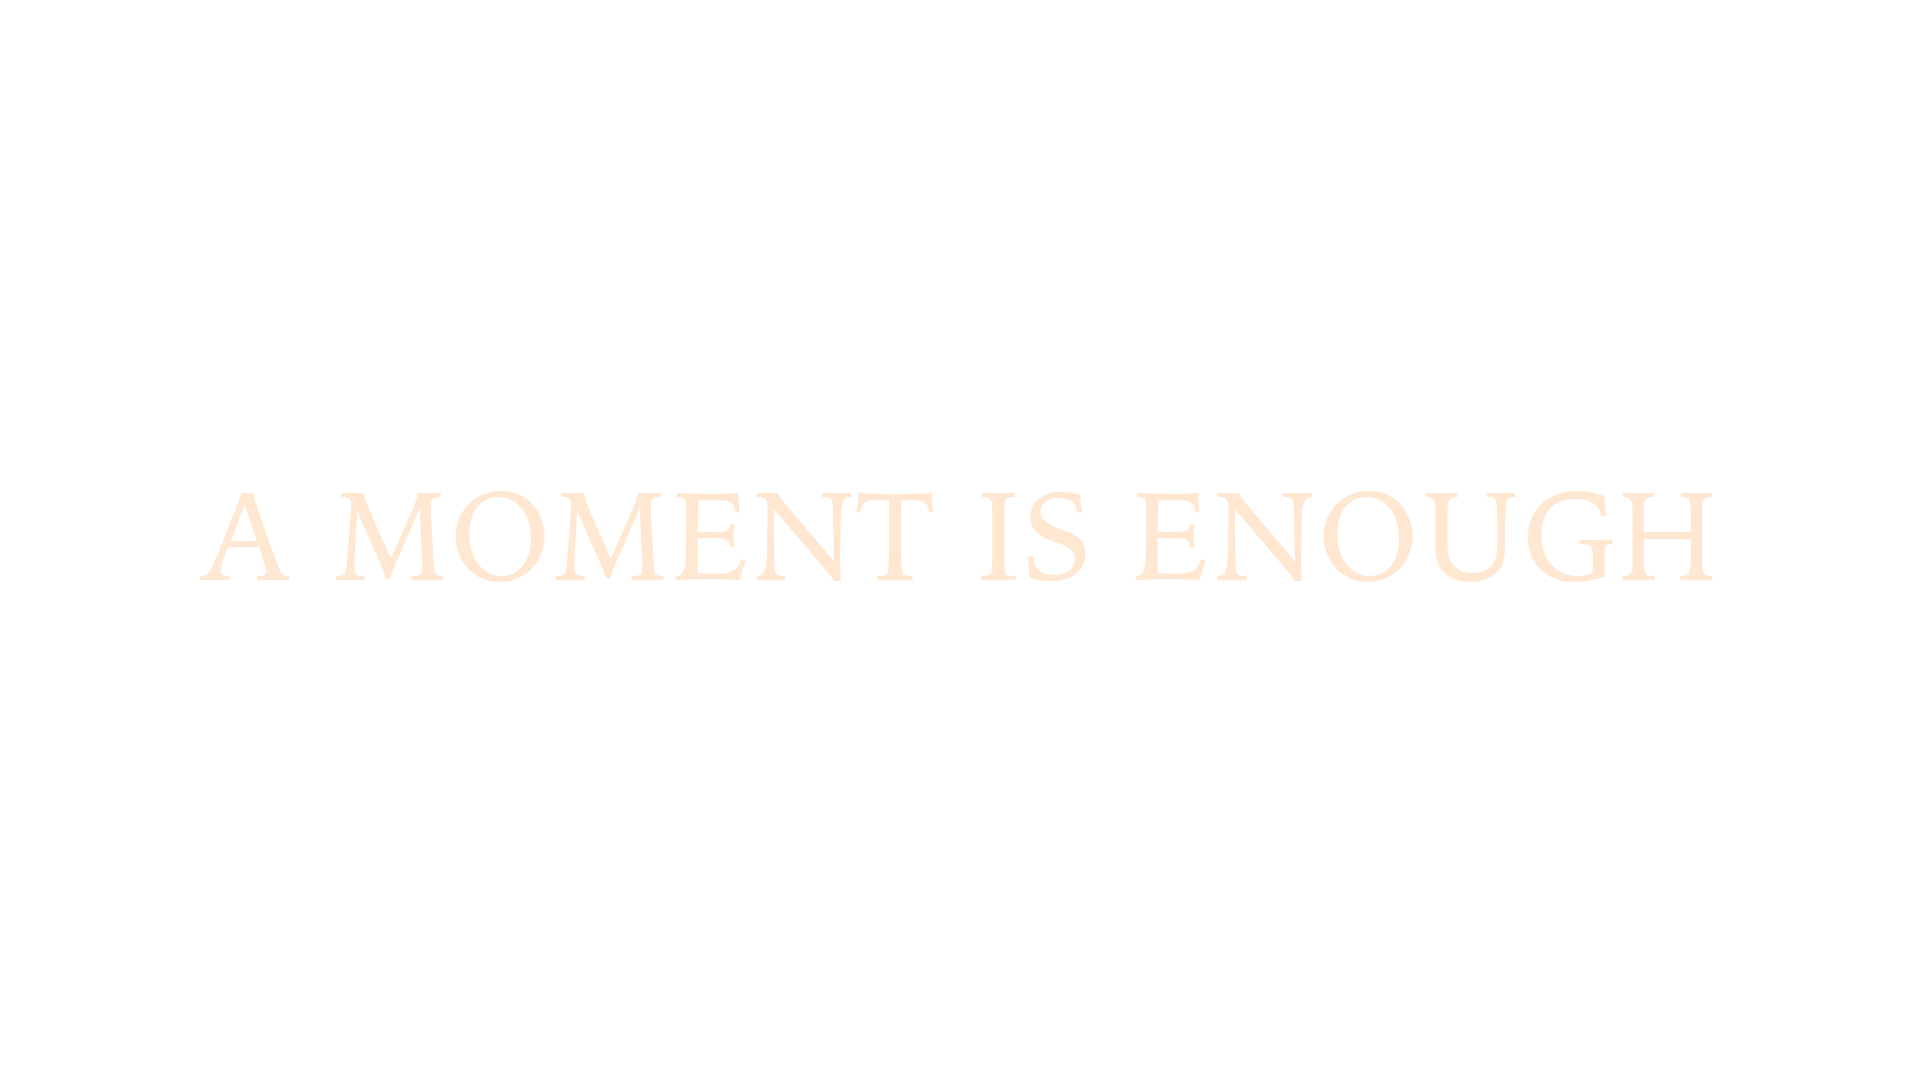 a_moment_is_enough_1920